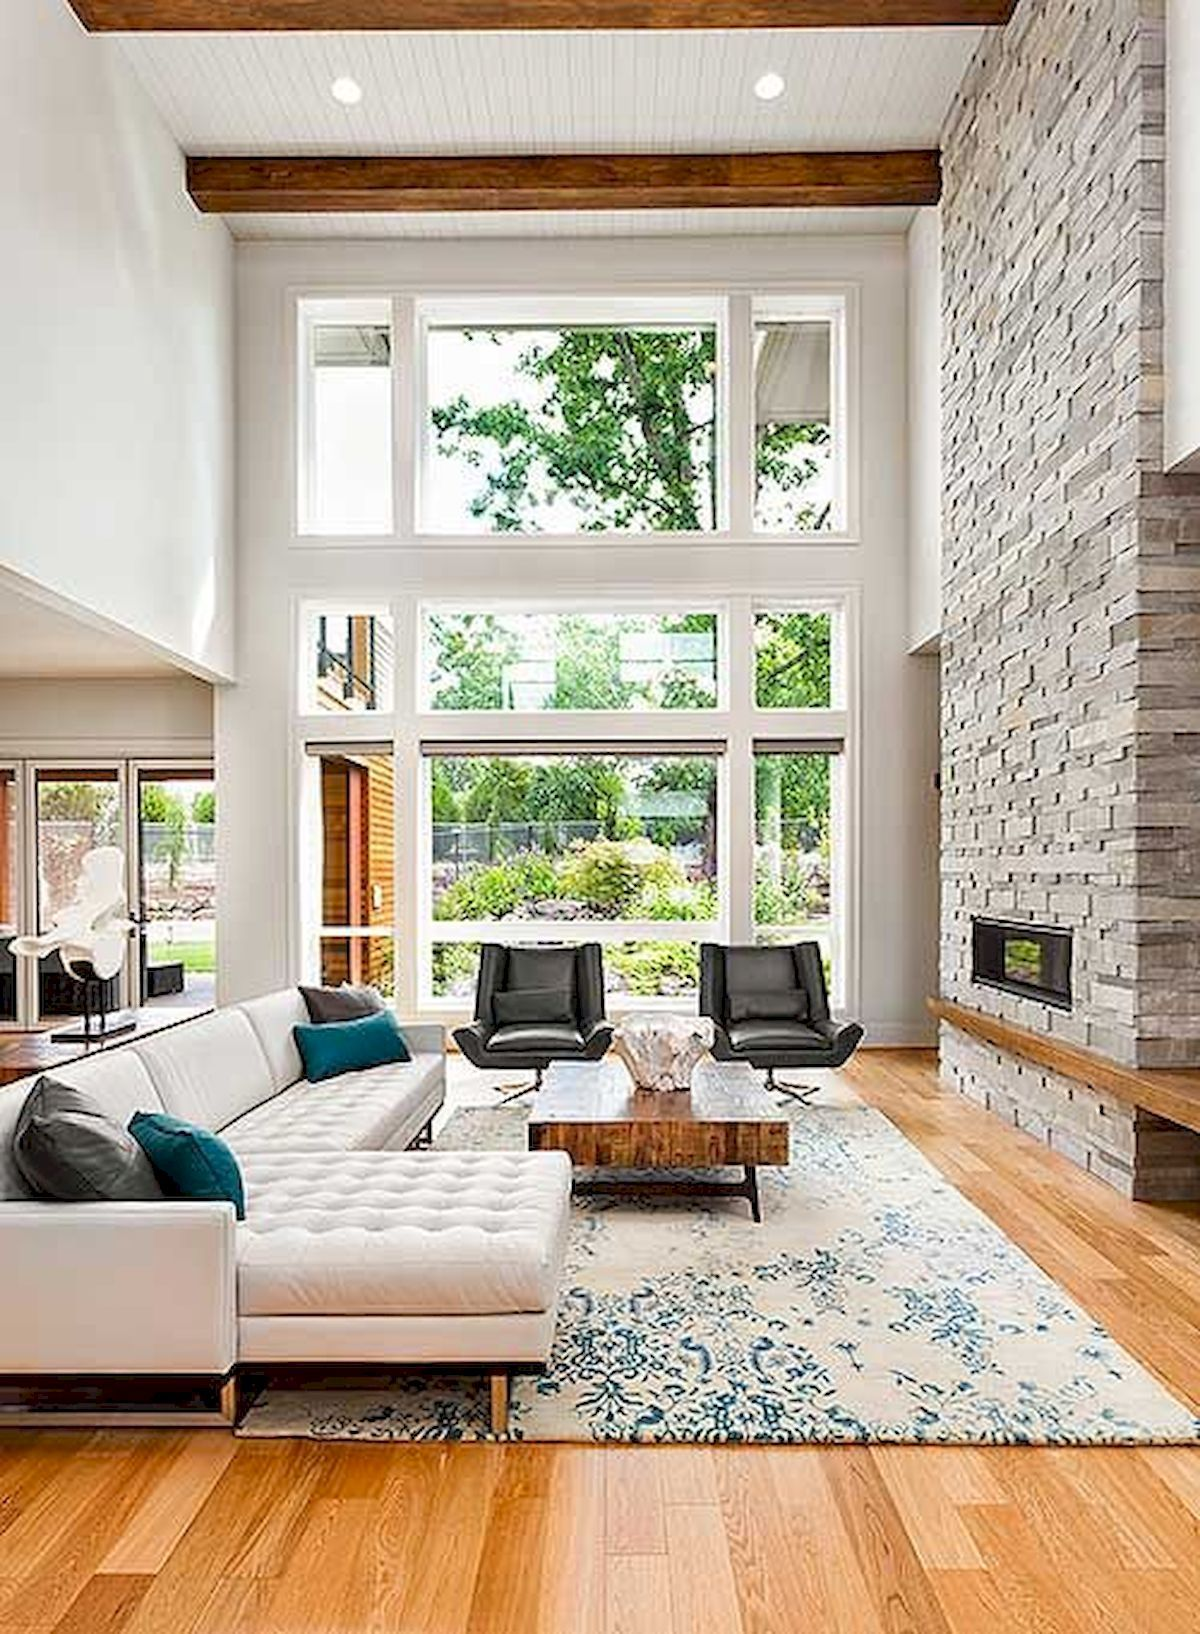 99 Creative Living Room Design Ideas You ll Want to Steal